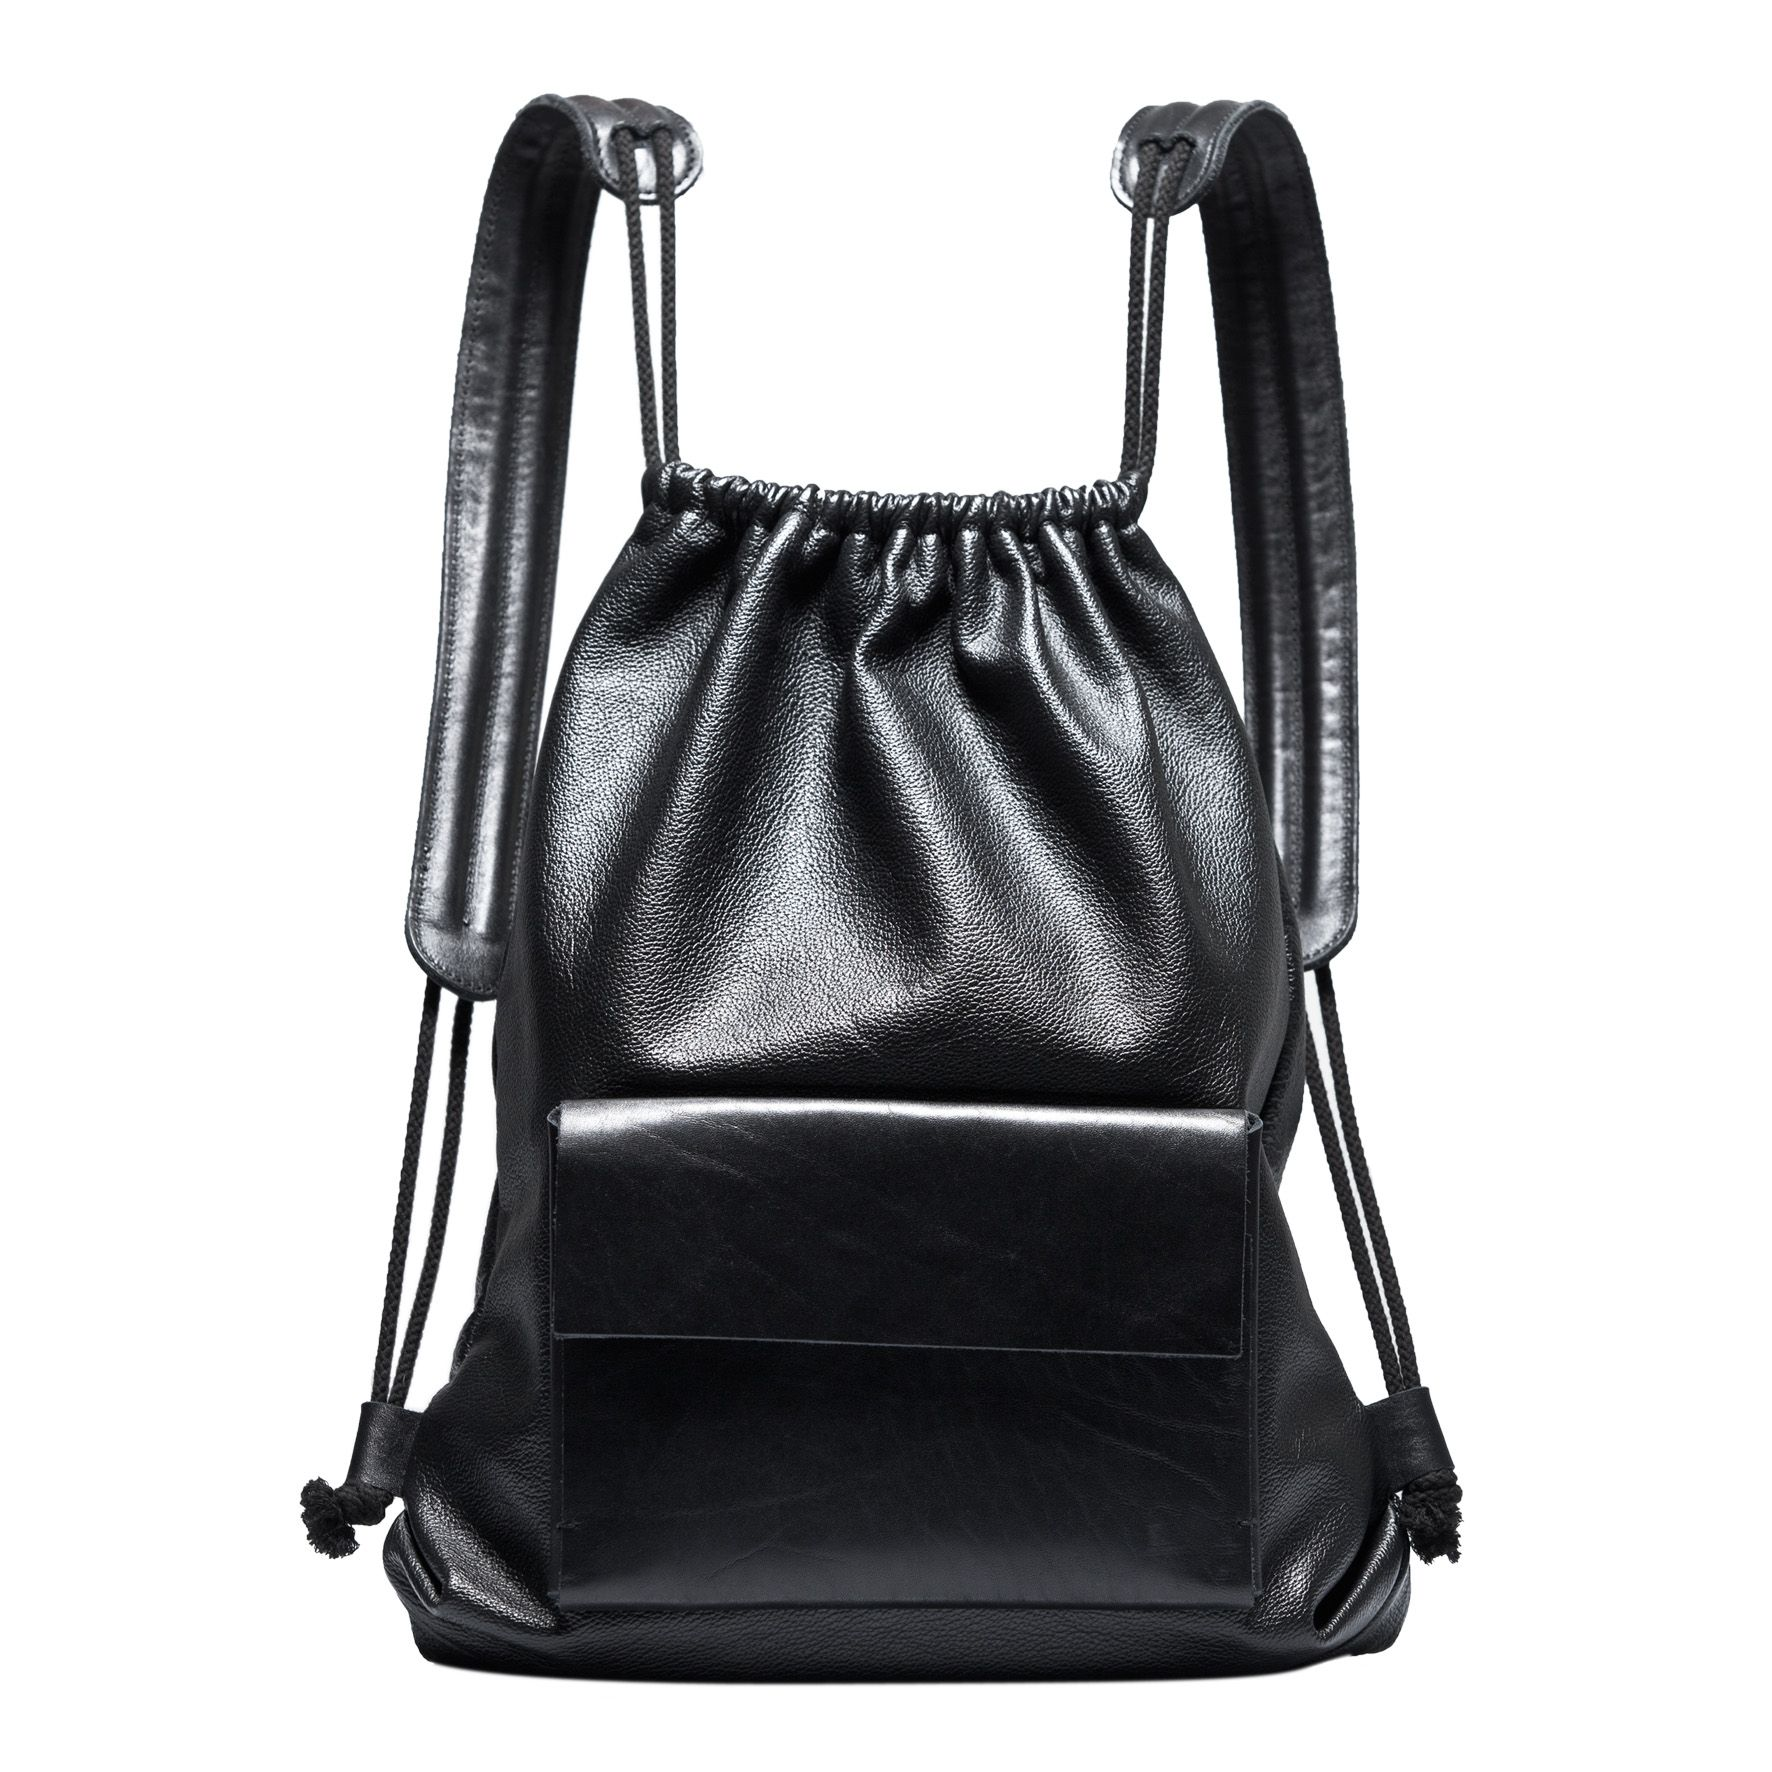 Black Leather Drawstring Backpack Architect S Fashion Bags